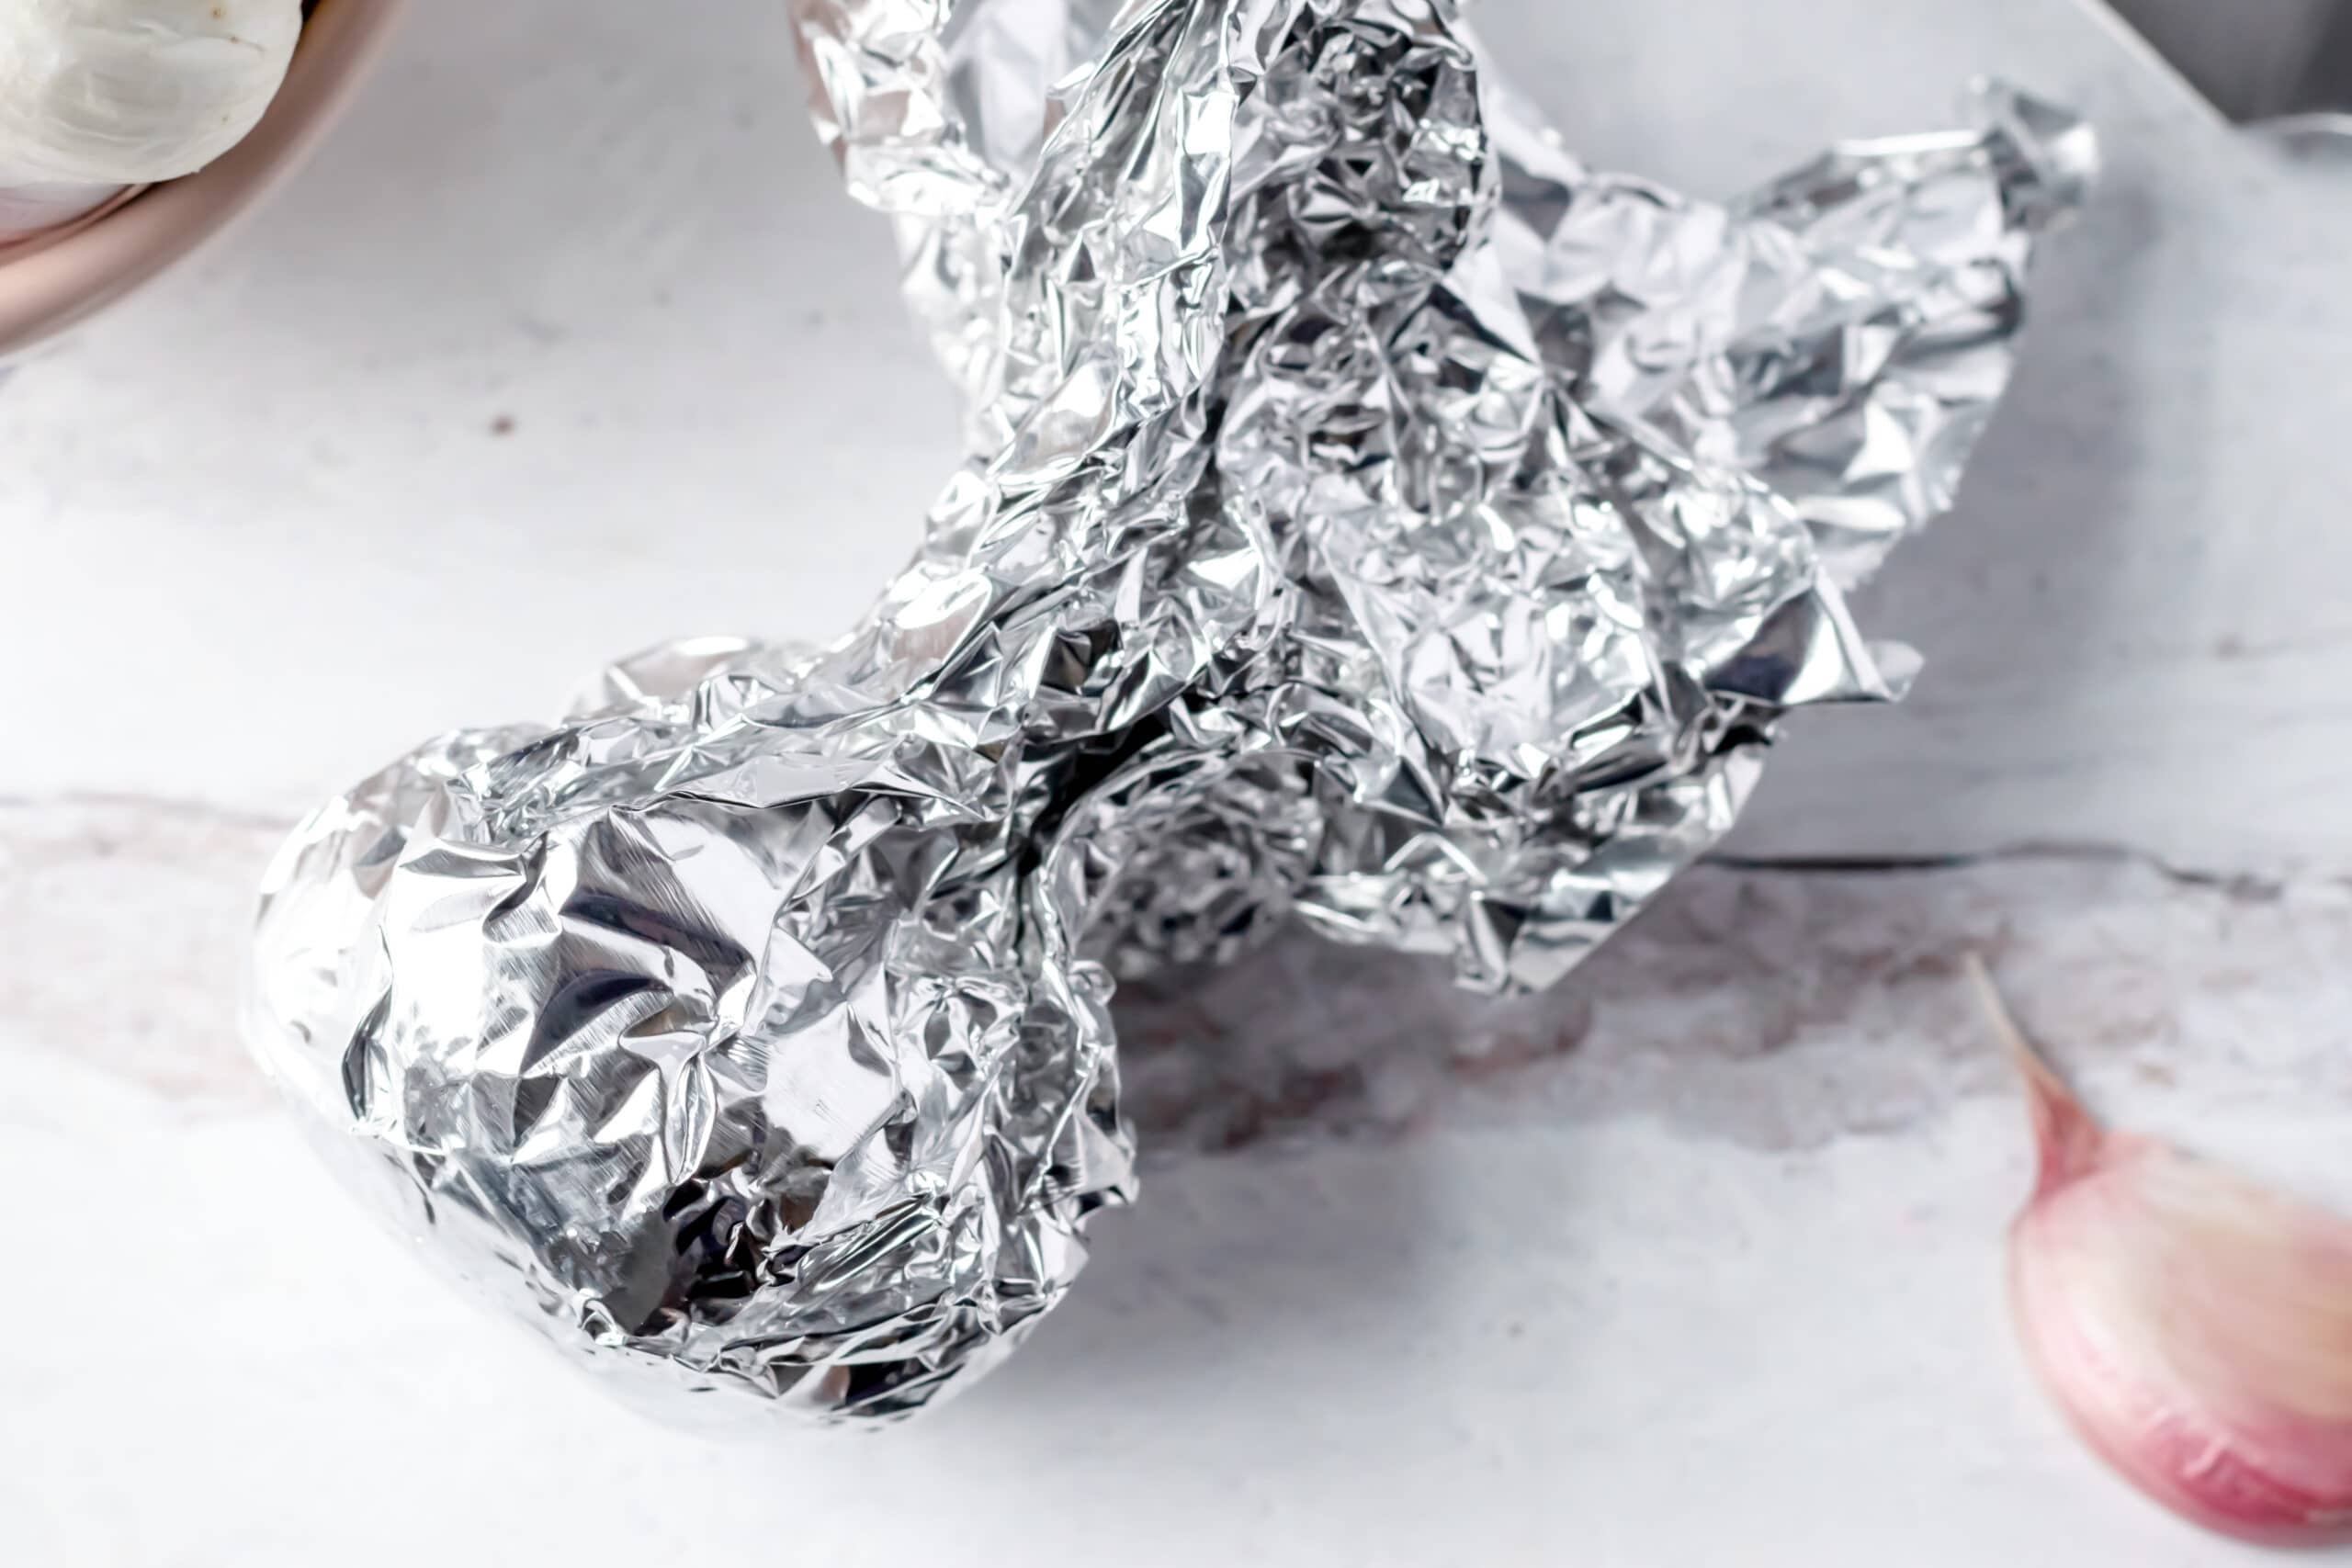 a crumpled aluminum foil packet with has a garlic bulb in the bottom ready to be roasted